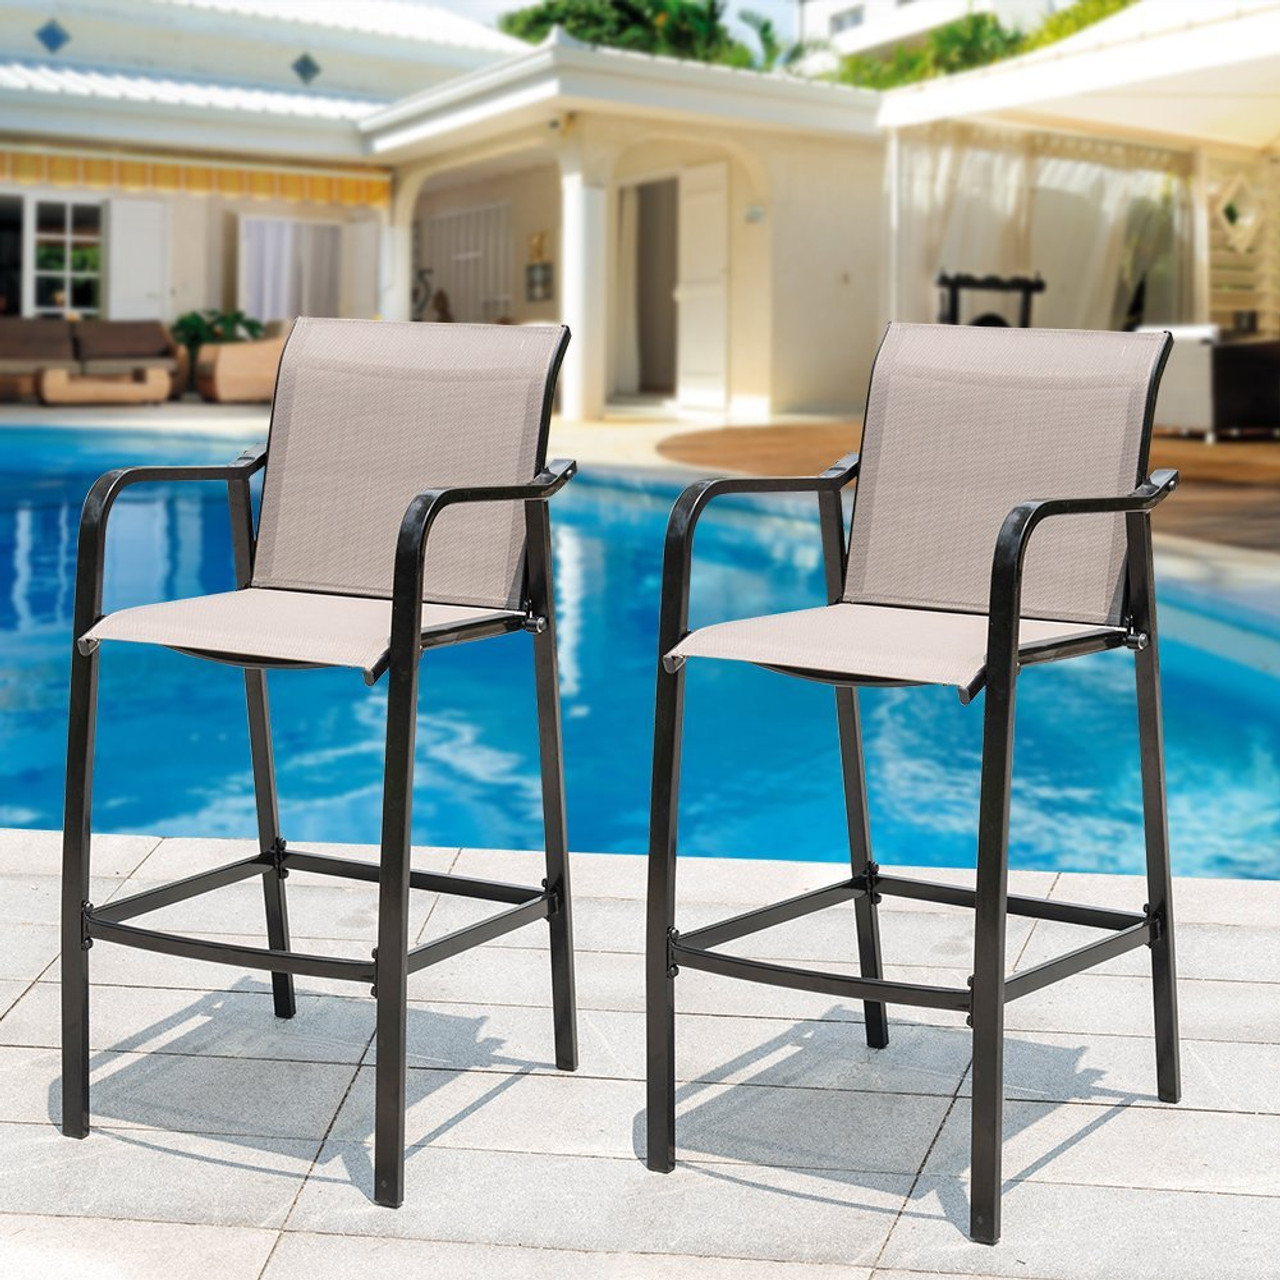 Sundale Outdoor Counter Height Bar Stool All Weather Patio Furniture With  Quick Dry Textilene Fabric, ...